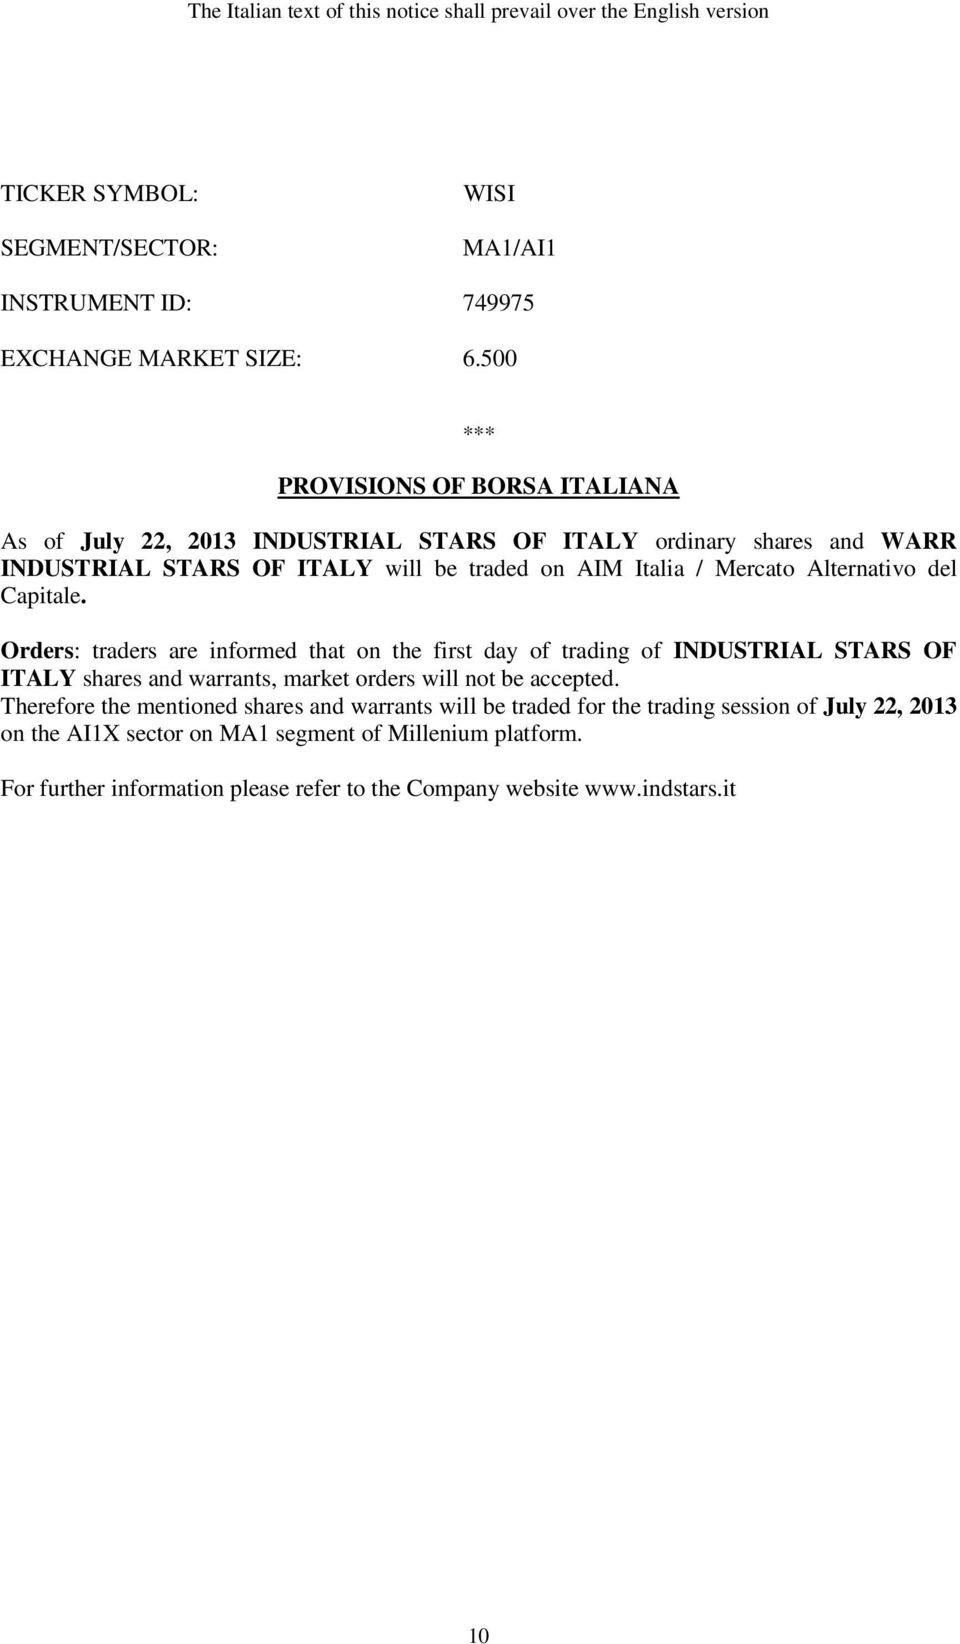 del Capitale. Orders: traders are informed that on the first day of trading of INDUSTRIAL STARS OF ITALY shares and warrants, market orders will not be accepted.